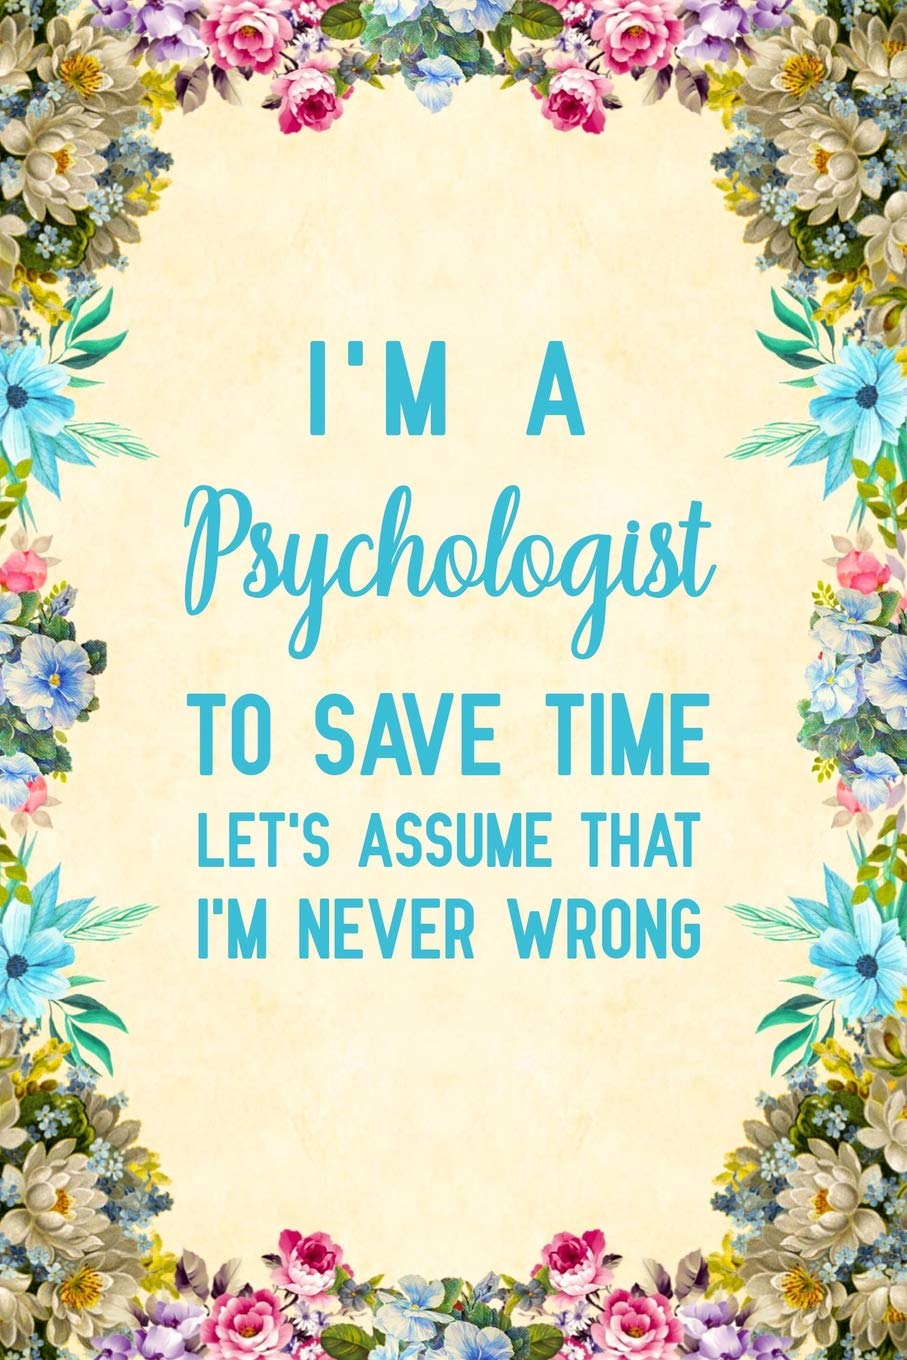 I'm a Psychologist To Save Time Let's Assume That I'm Never Wrong: Notebook  to Write in for Mother's Day, psychologist gifts for mom, Mother's day ...  psychology notebook, psychology gifts: Nova, Booki: